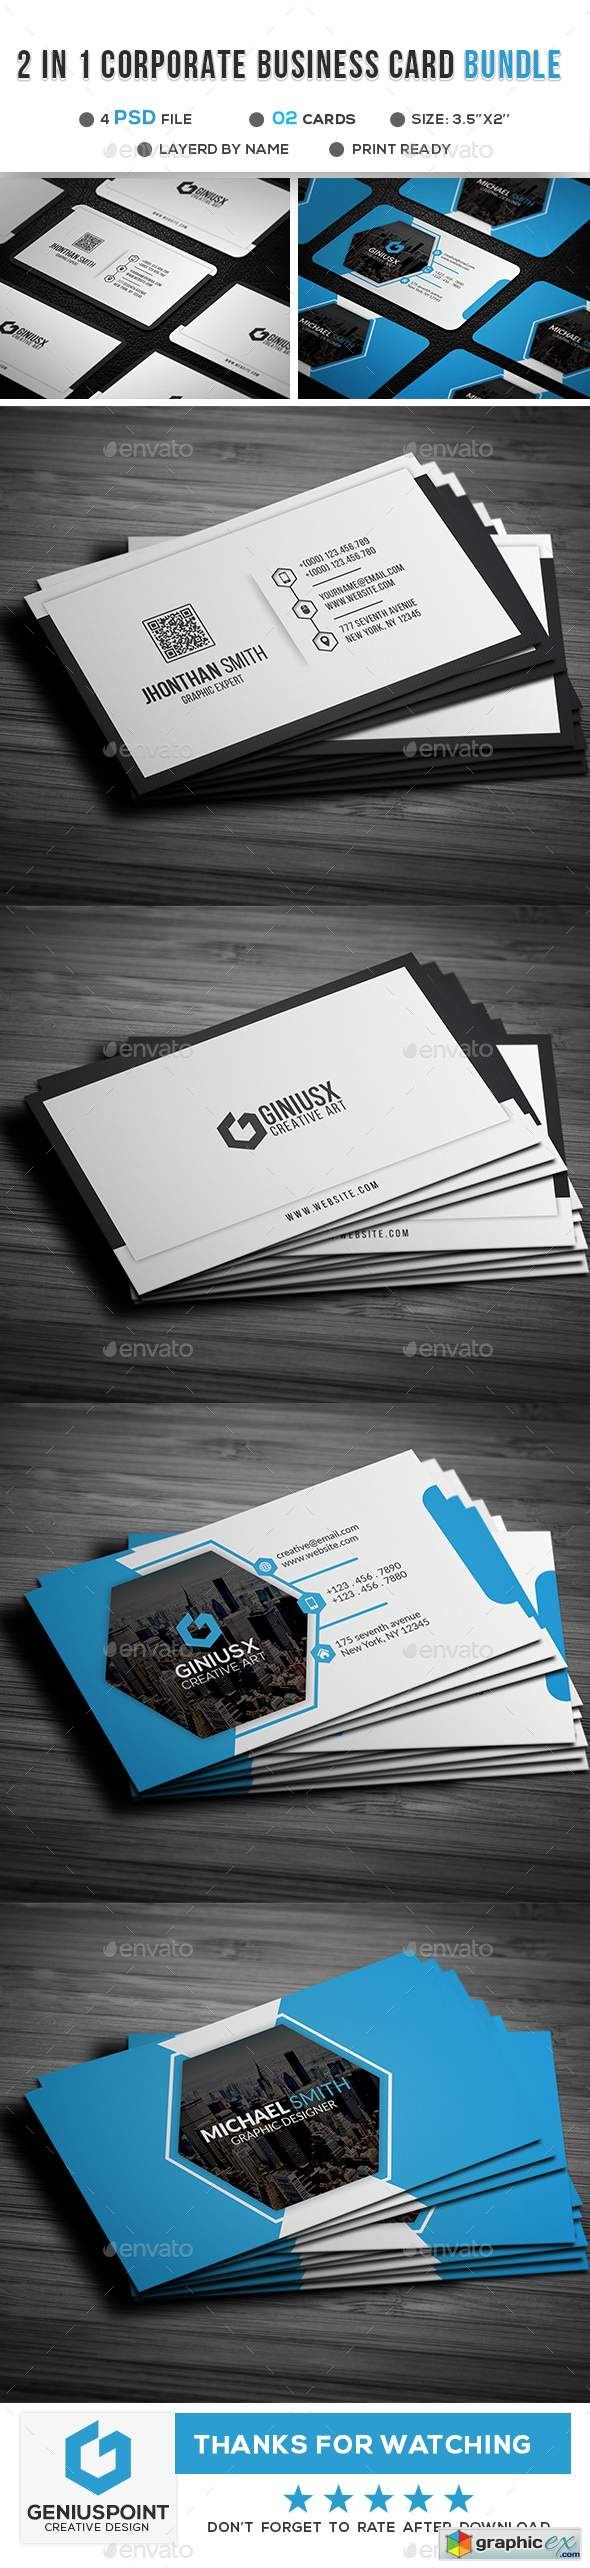 2 in 1 Corporate Business Card 21889670